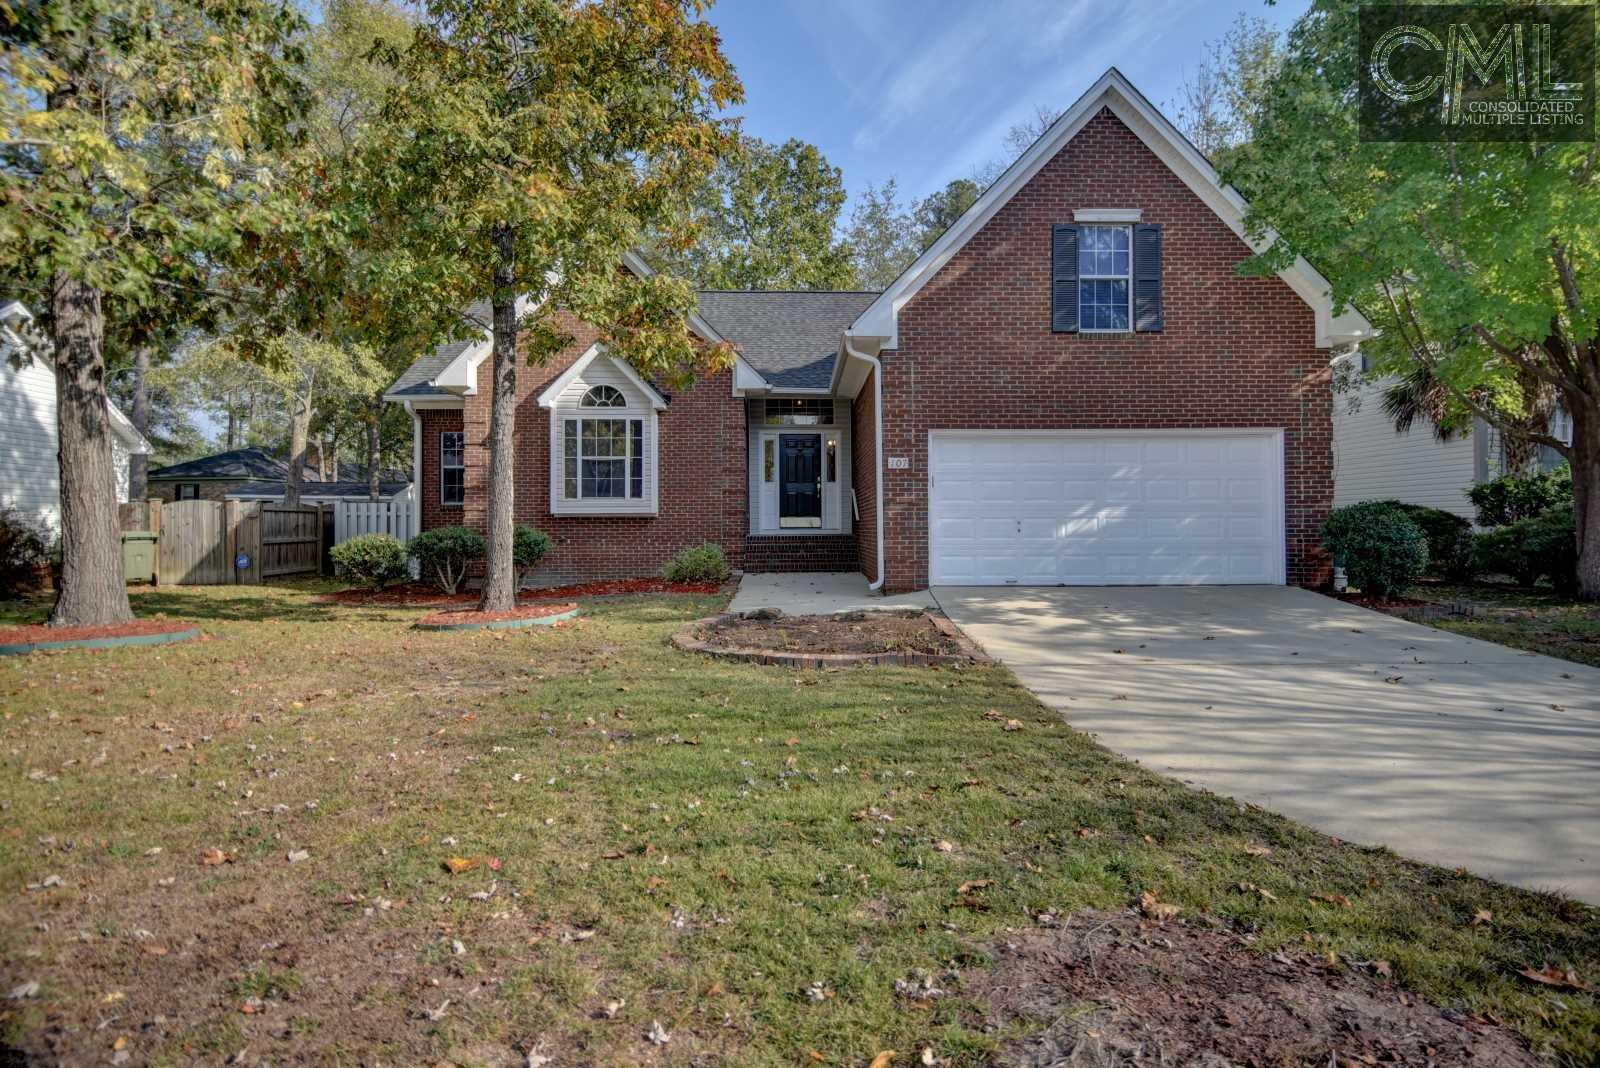 107 majestic dr columbia sc 29223 estimate and home details